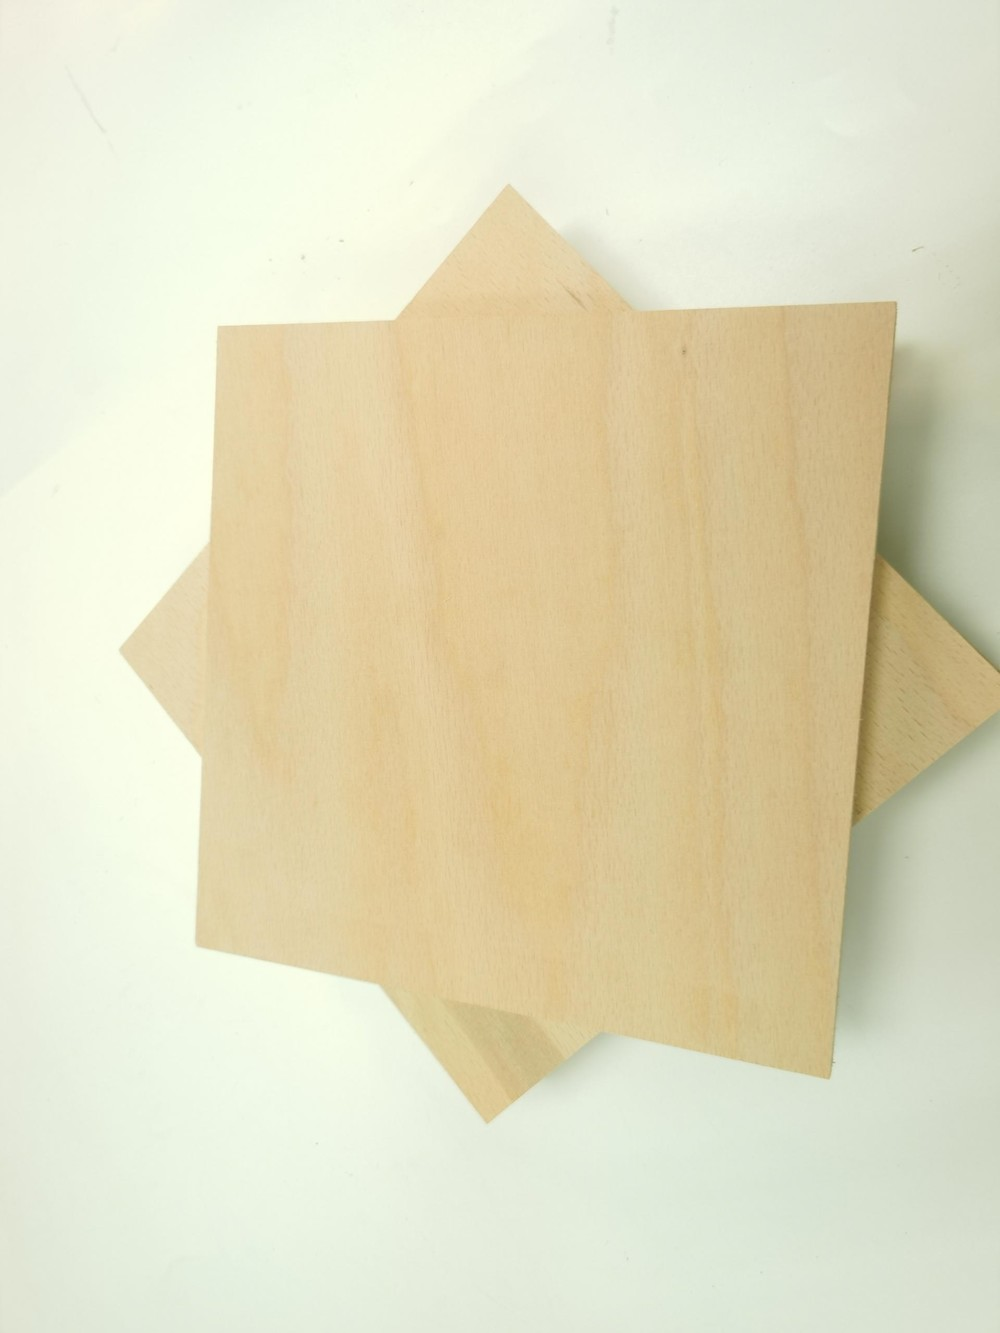 1/2 inch full pine cdx plywood for construction shuttering